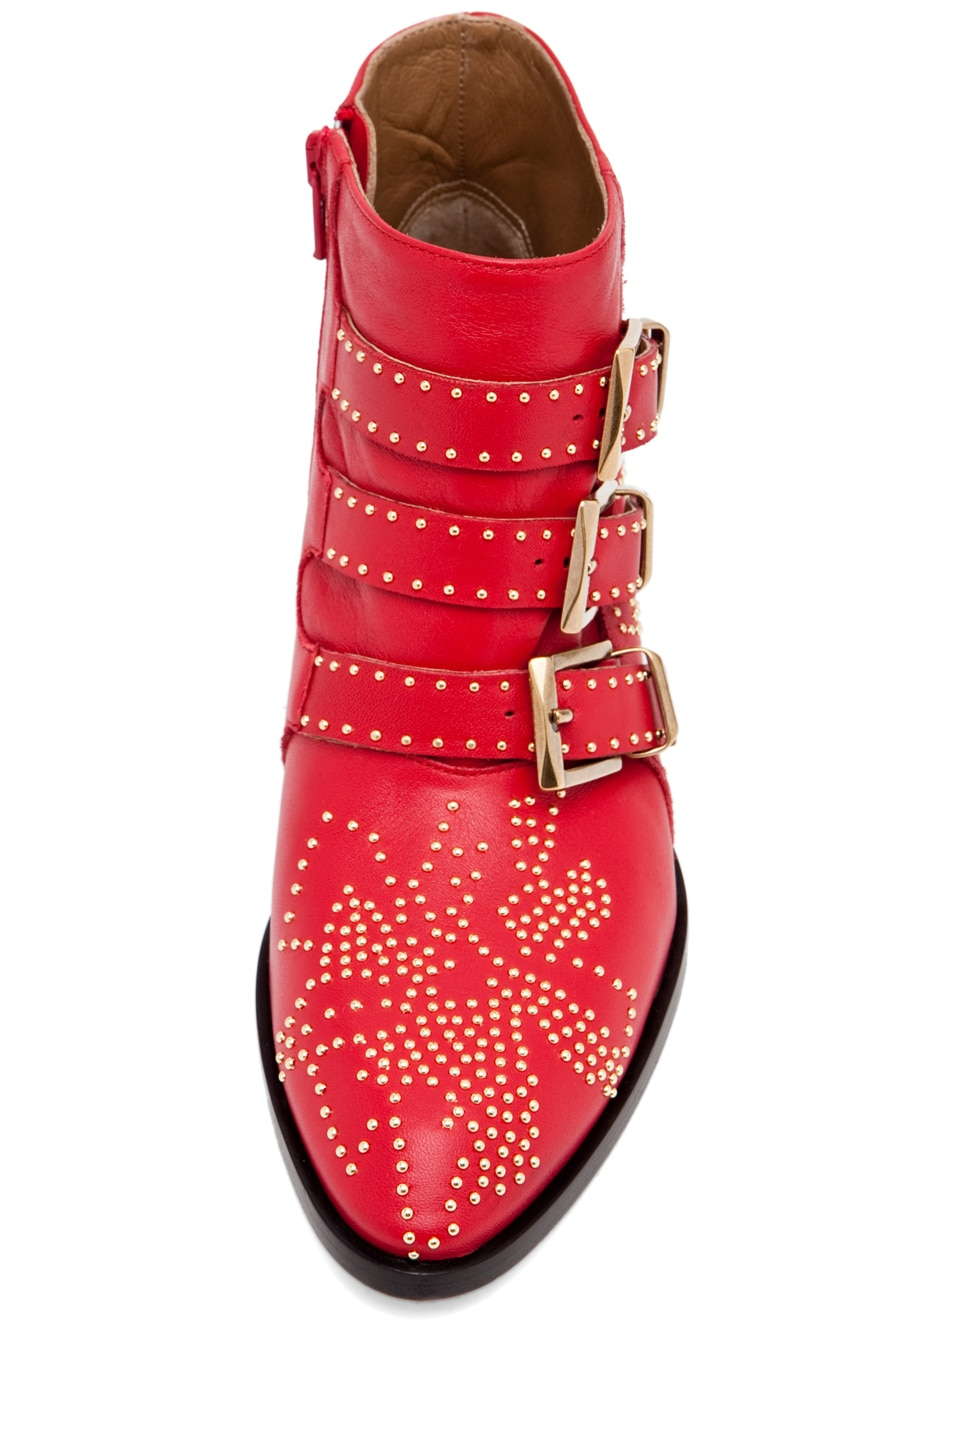 Image 4 of Chloe Susanna Leather Studded Booties in Red